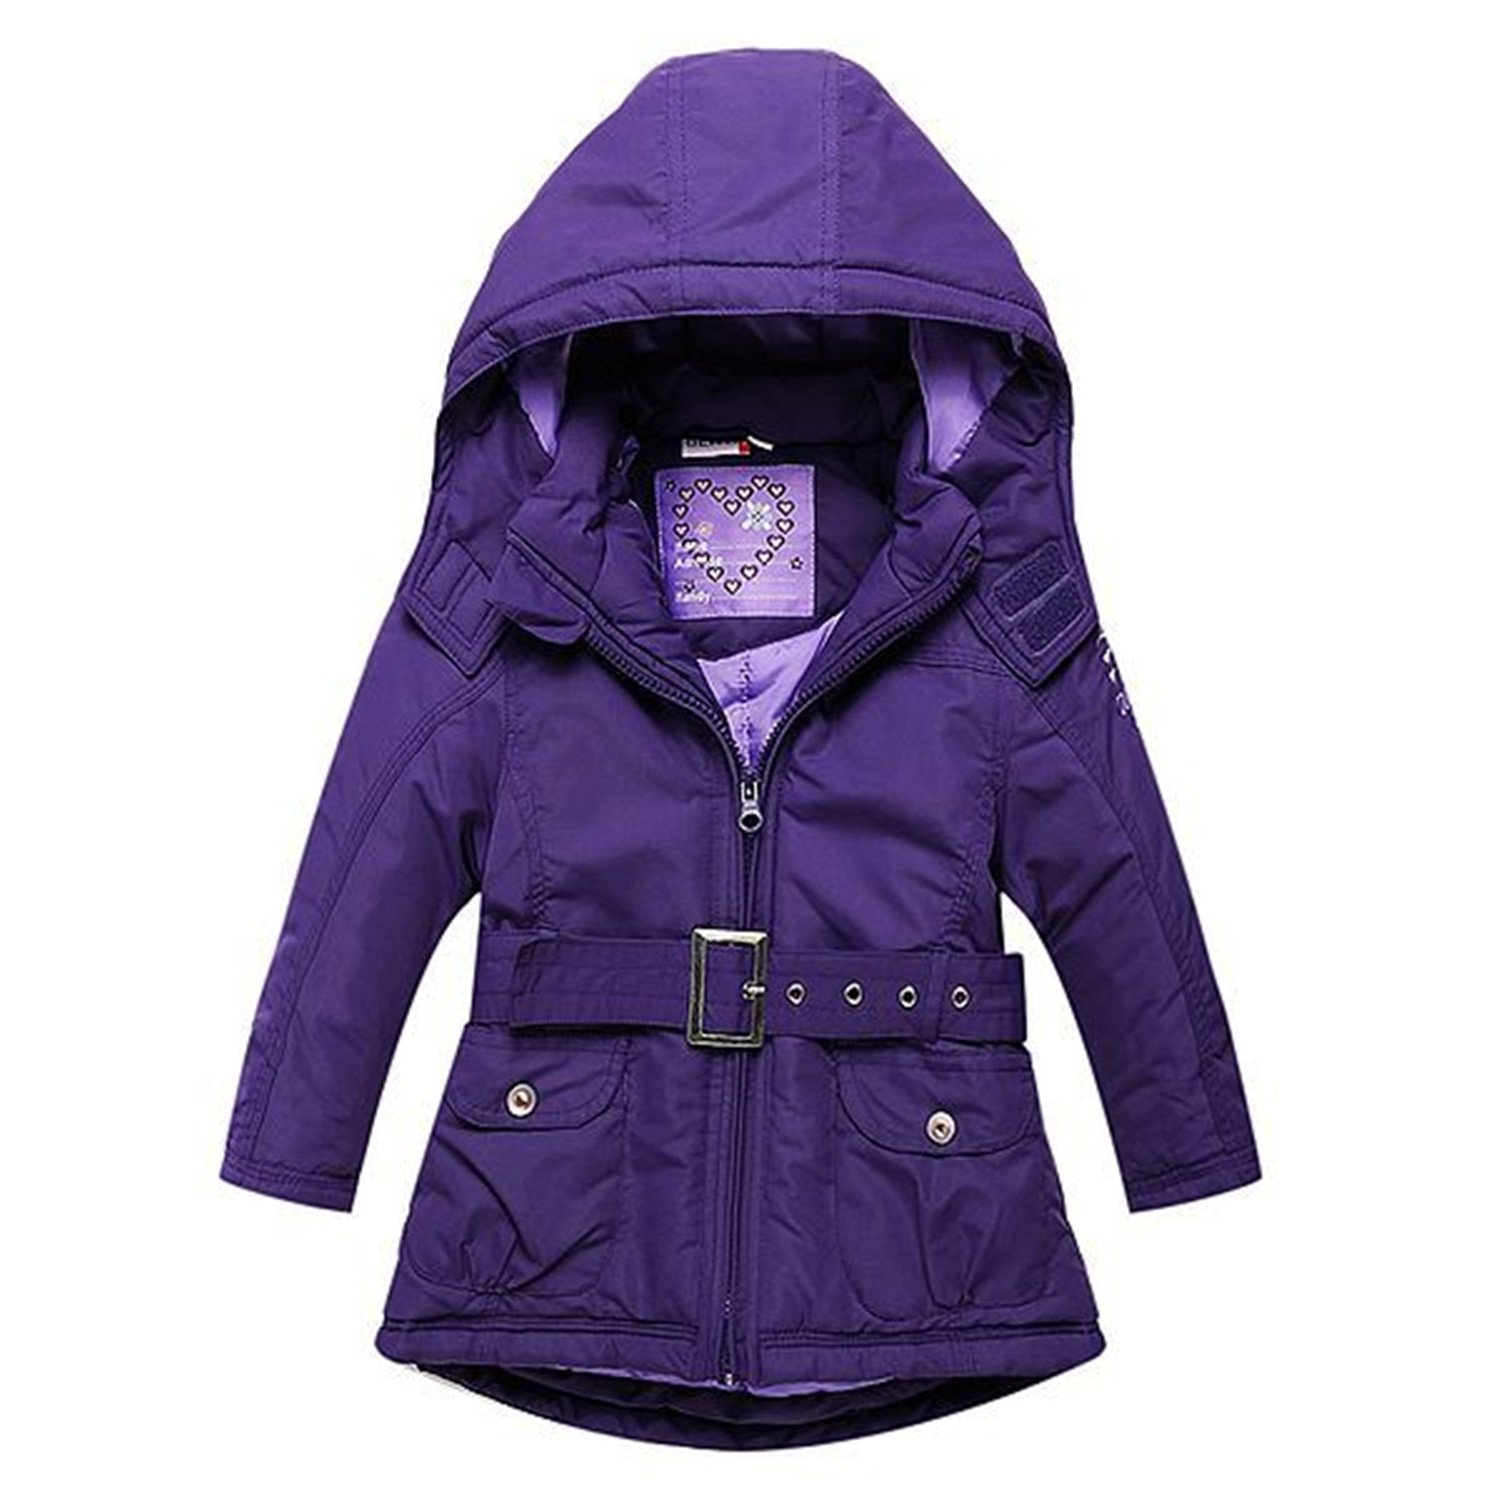 Baqijian Girls Parka Winter Coat Fur Jacket Sashes Cotton-Padded Coat Hooded Wind-Proof Kids Jacket Children Outerwear